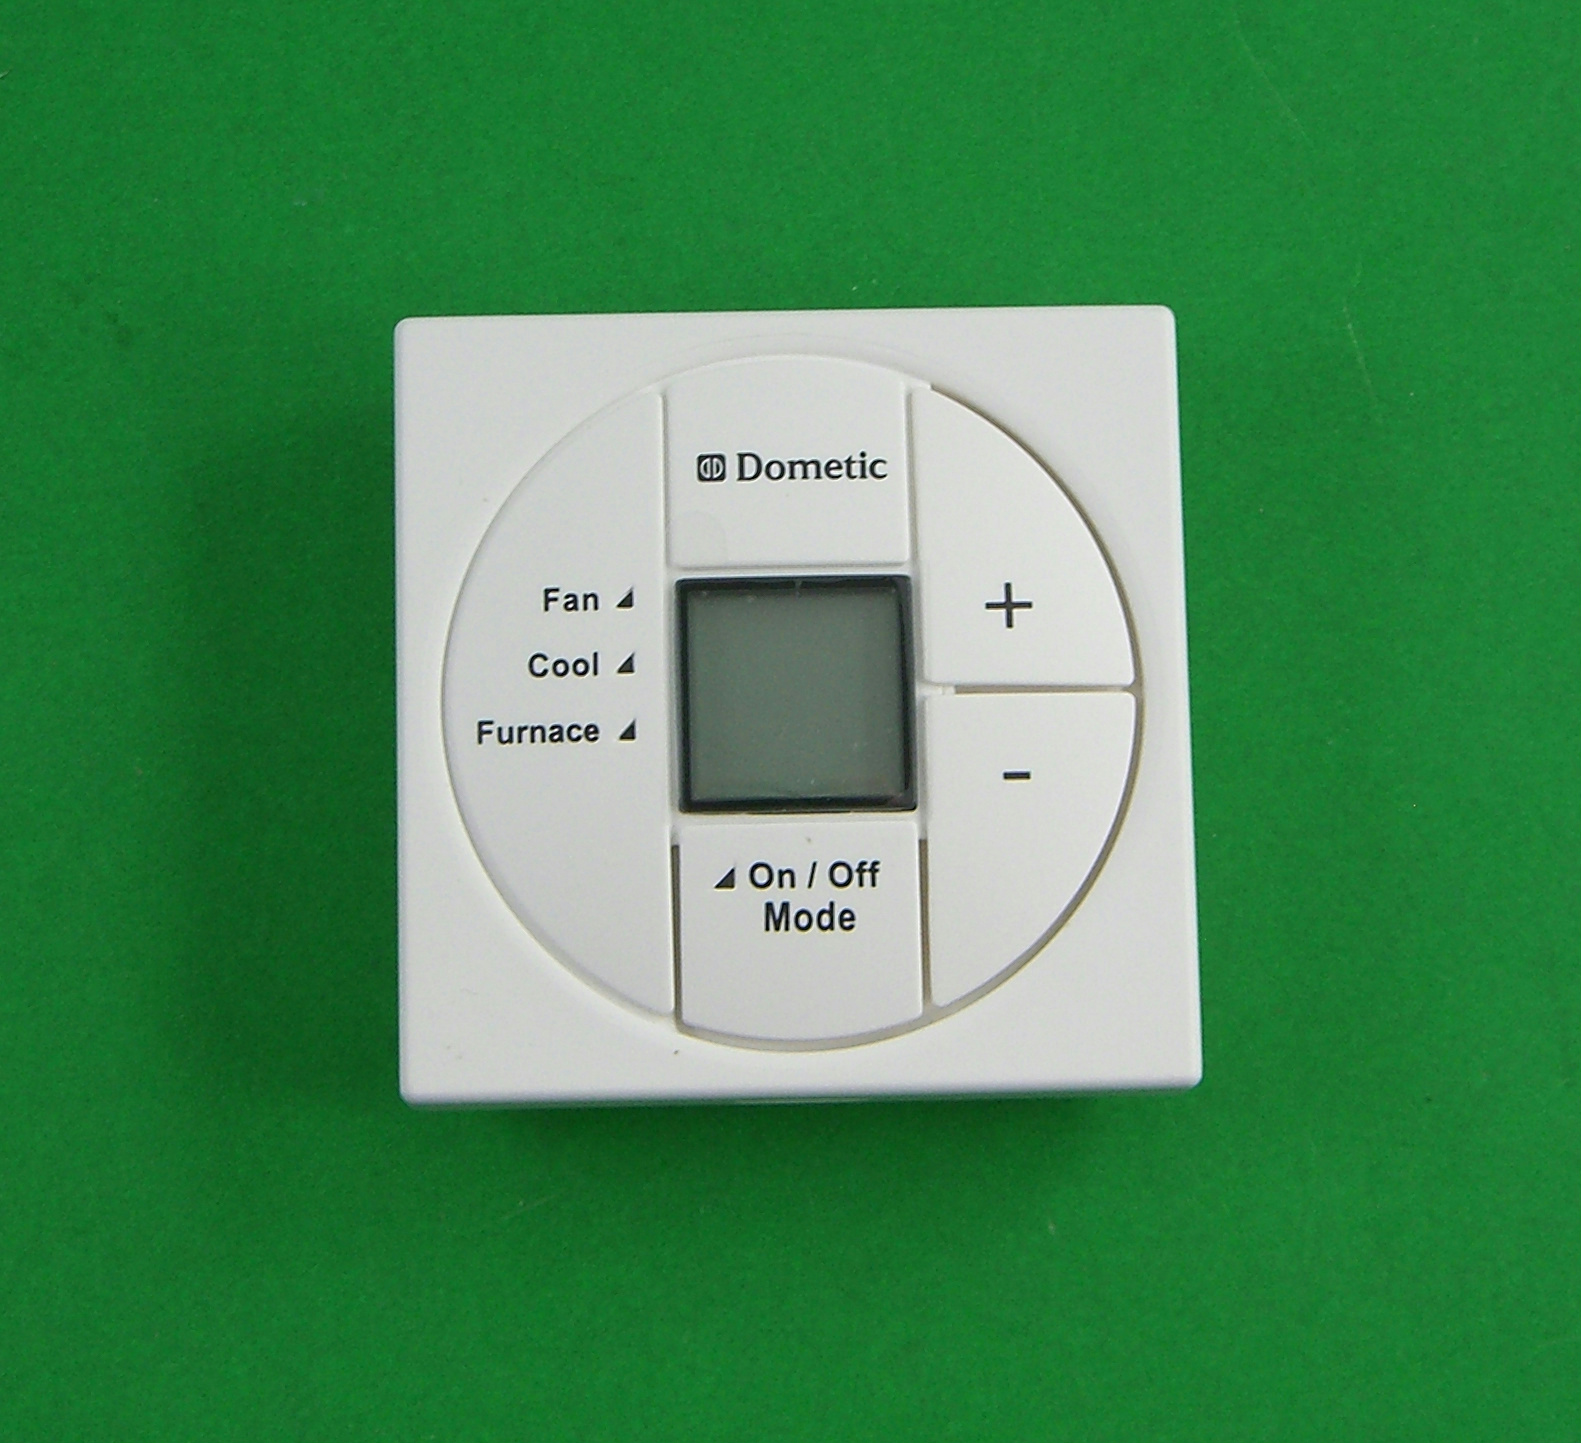 Hd Wallpapers Wiring Diagram For Dometic Single Zone Lcd Thermostat Get Free High Quality